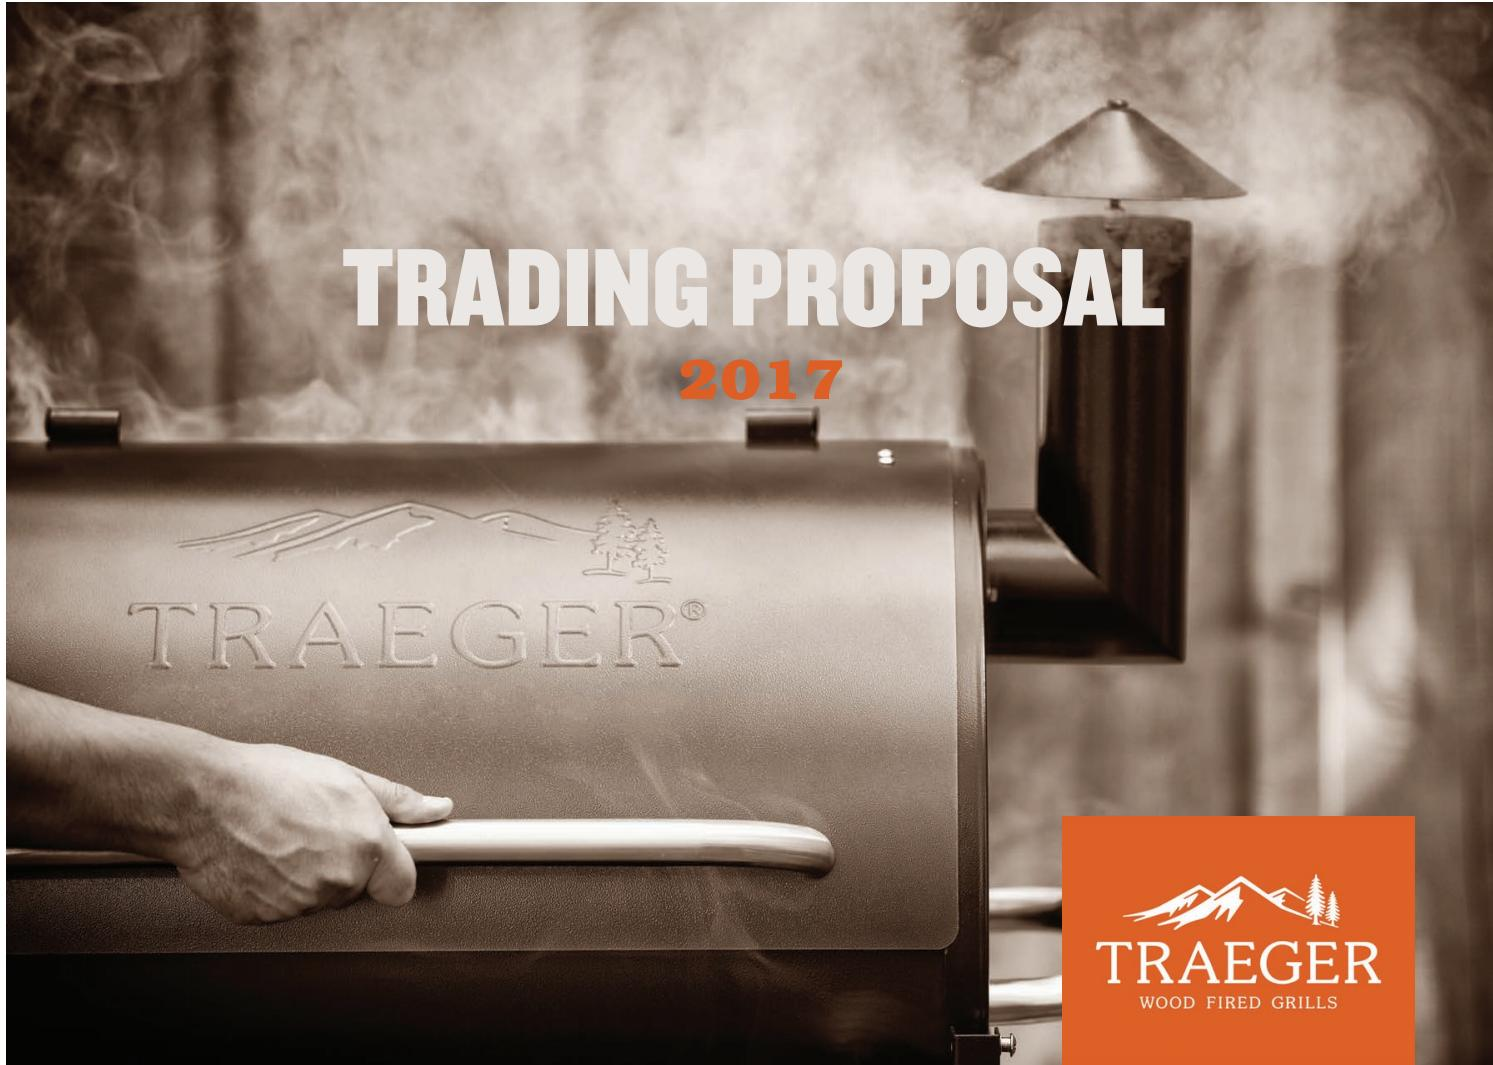 Traeger Grill Aluminum Drip Tray 5 Pack for 20 series grill